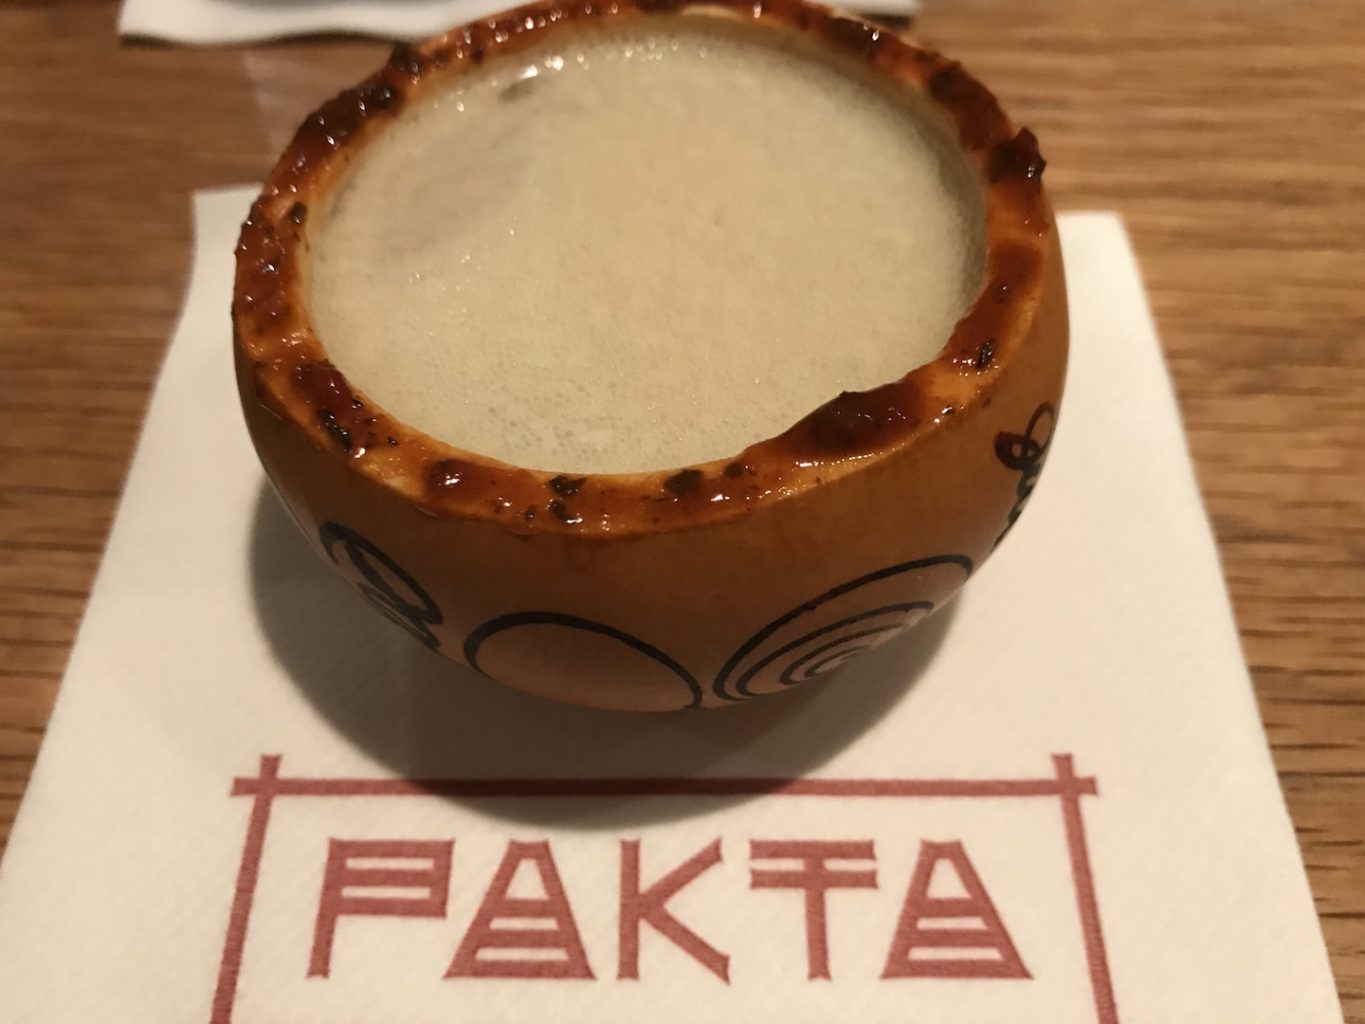 Cocktail, Pisco, Pakta, Jorge Muñoz, Barcellona, Spagna, Michelin